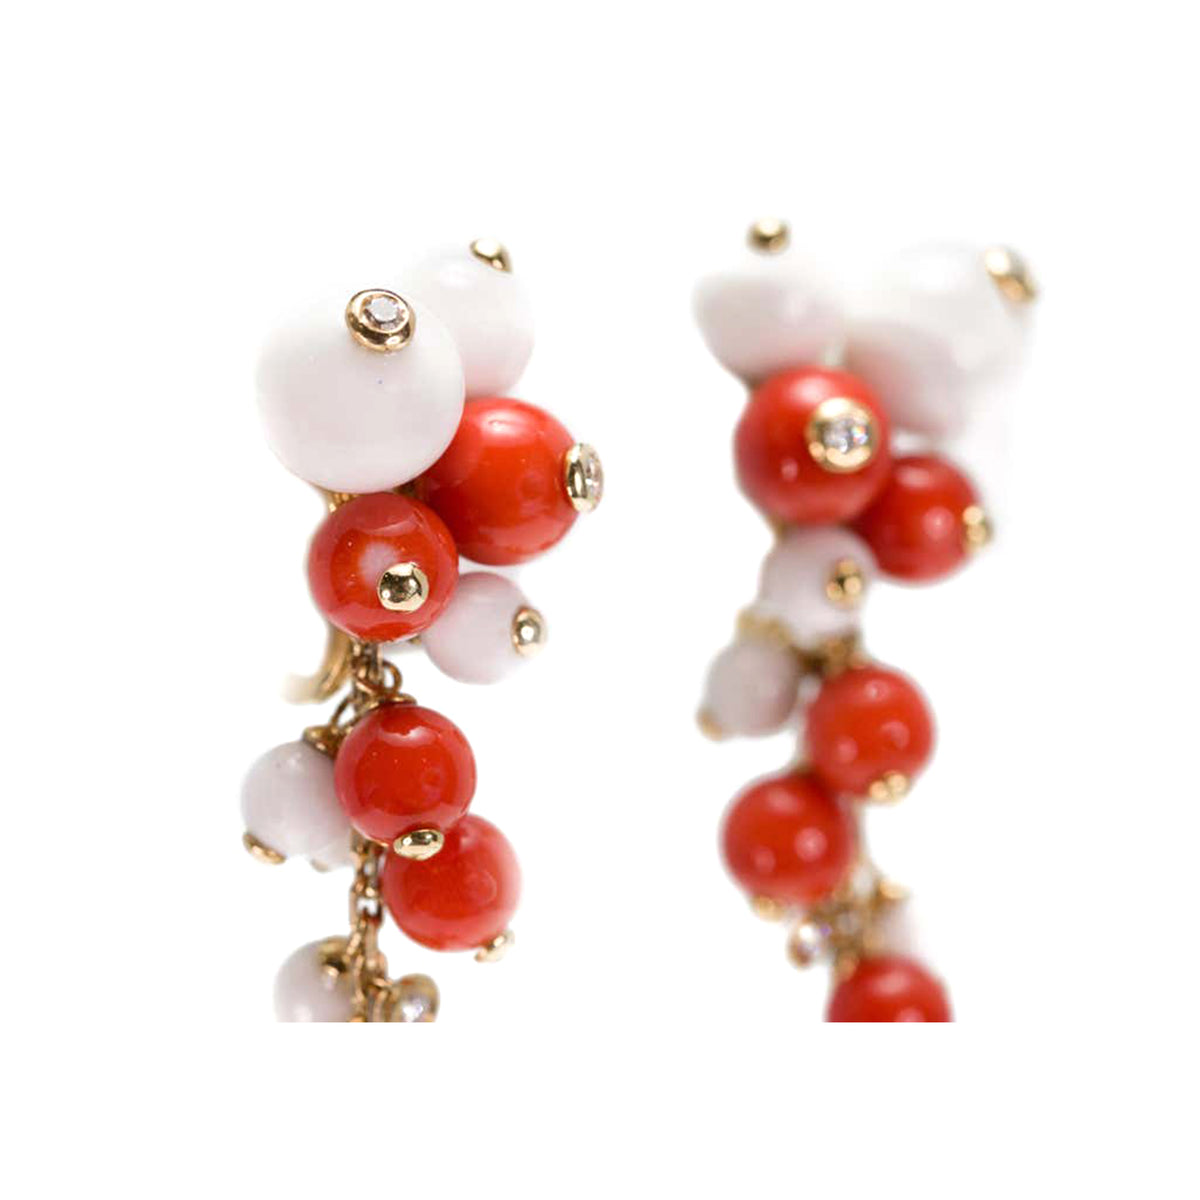 Italian Coral, White Agate Beads and Diamonds Dangling Earrings in 18 Karat Gold